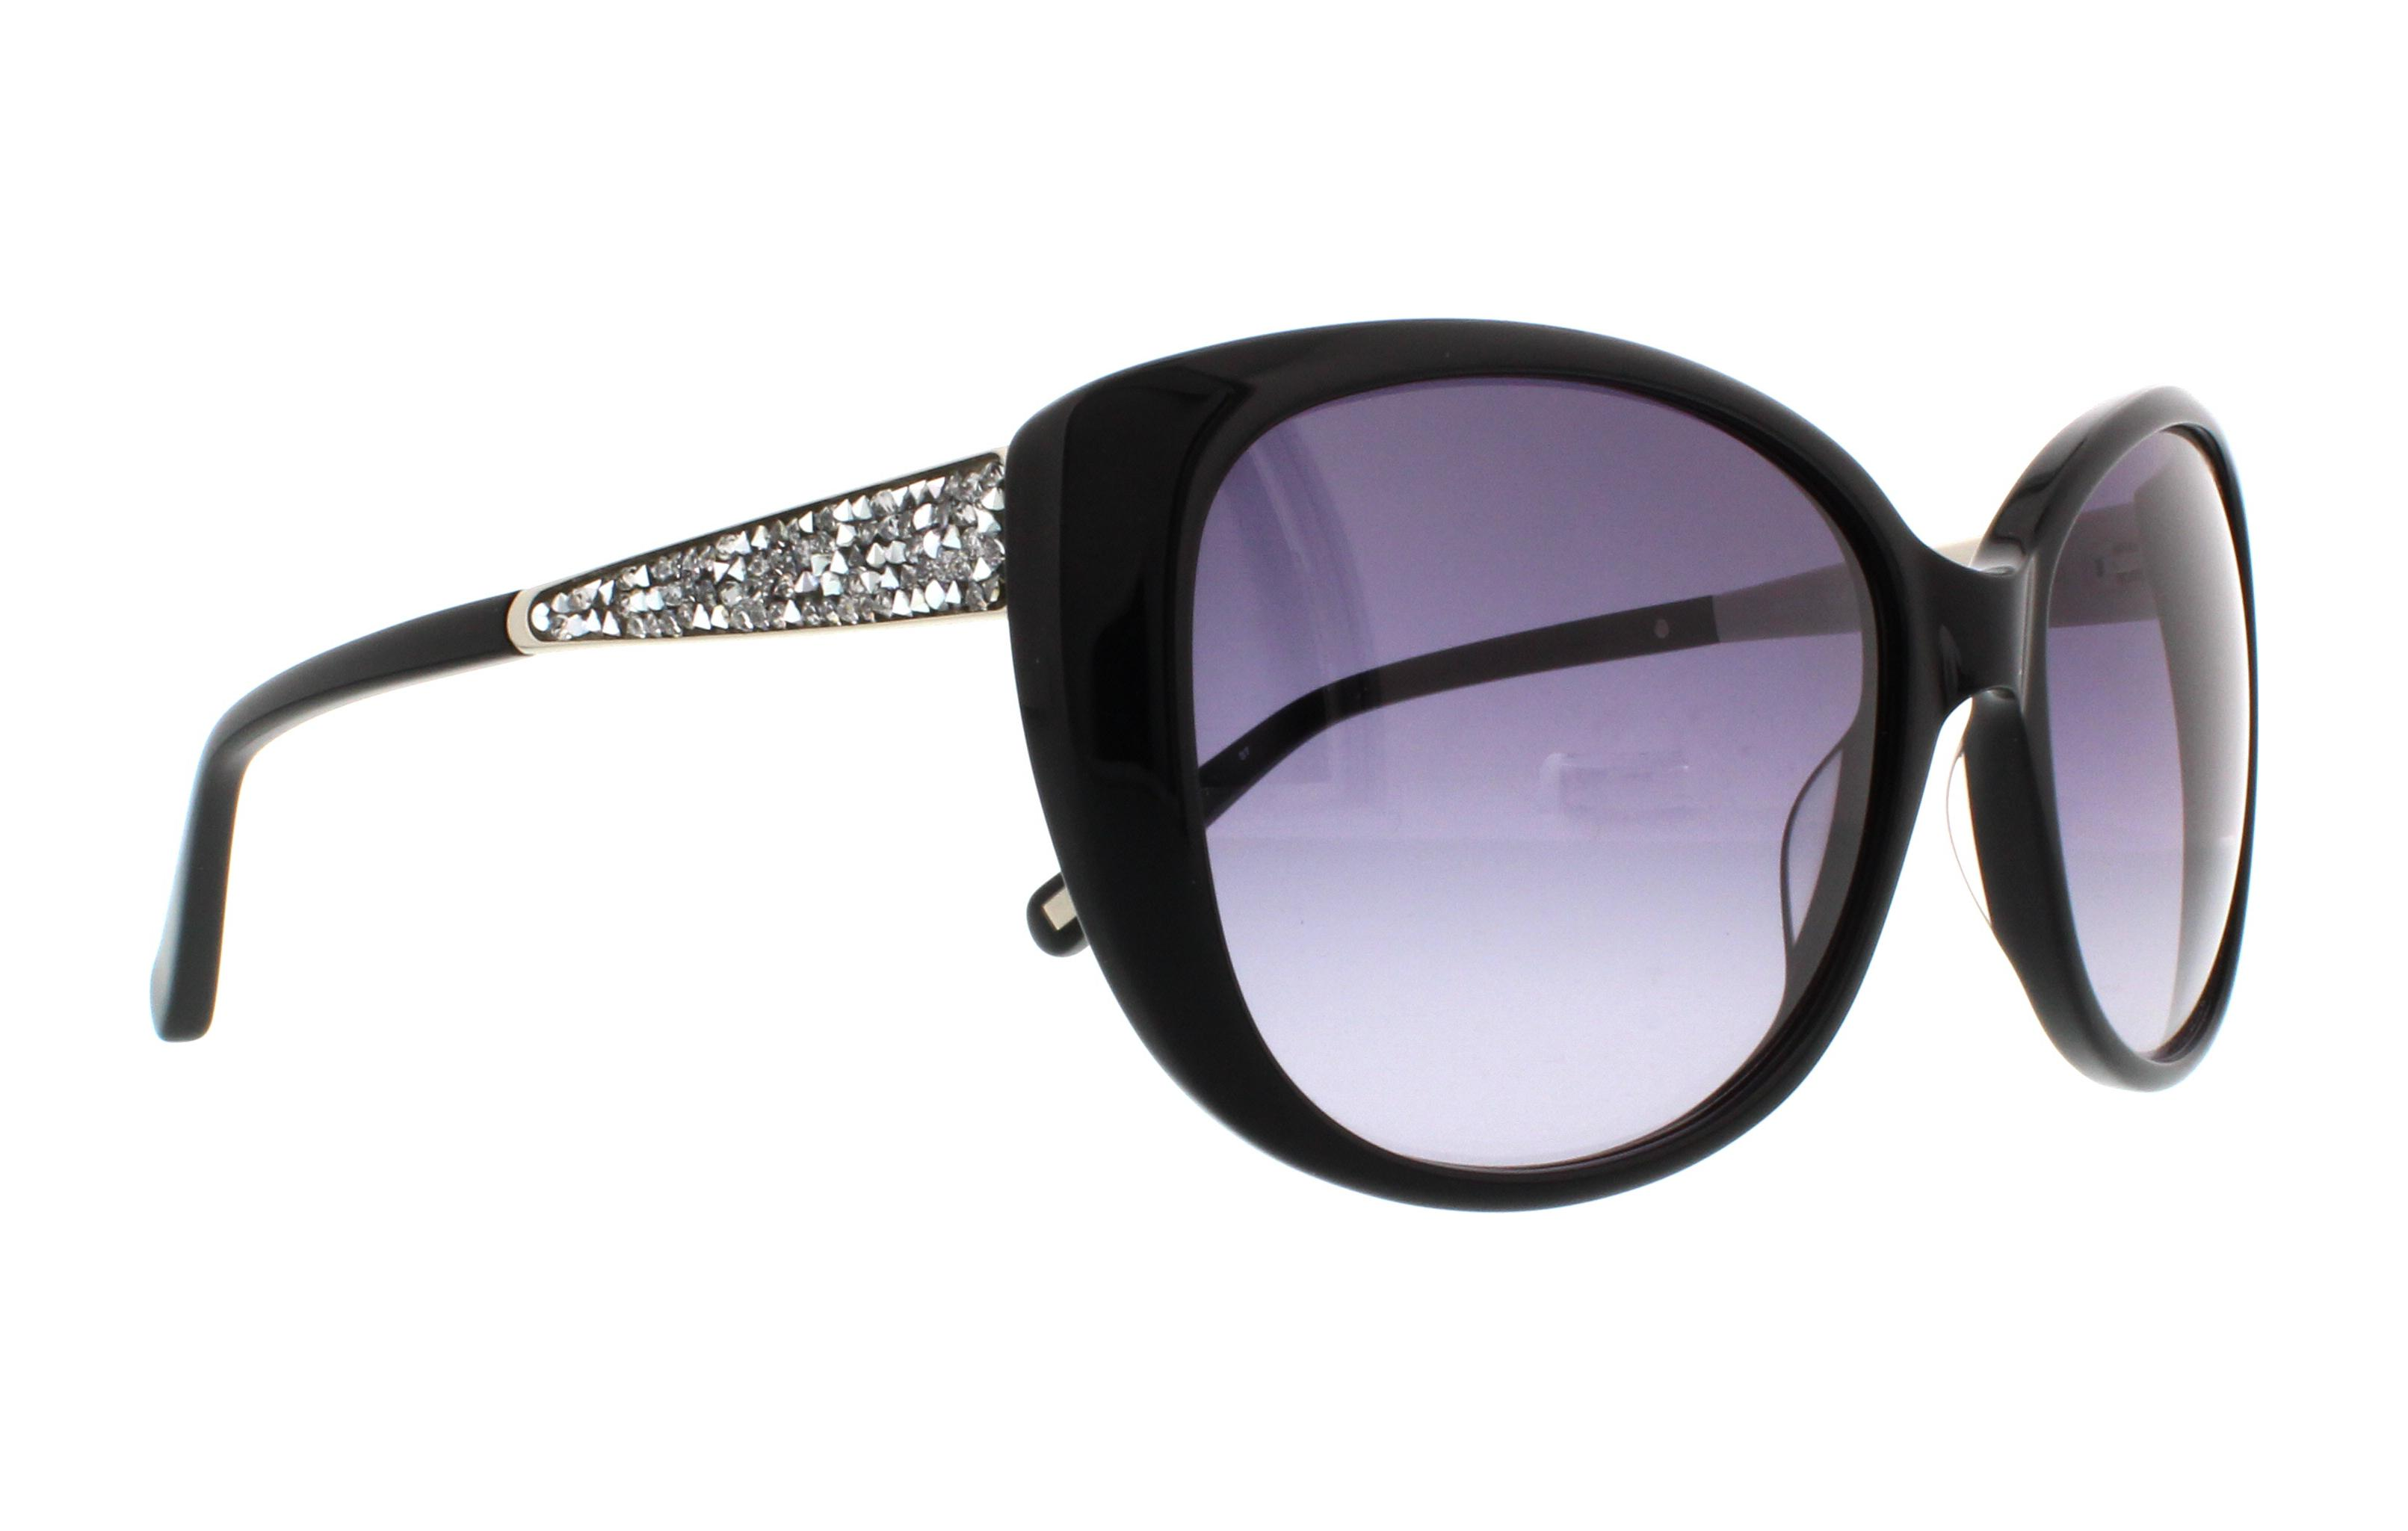 6bed5057fd8089 ... cheapest price b01d5 3eaf4 Picture of Guess By Marciano Sunglasses  GM0722 ...